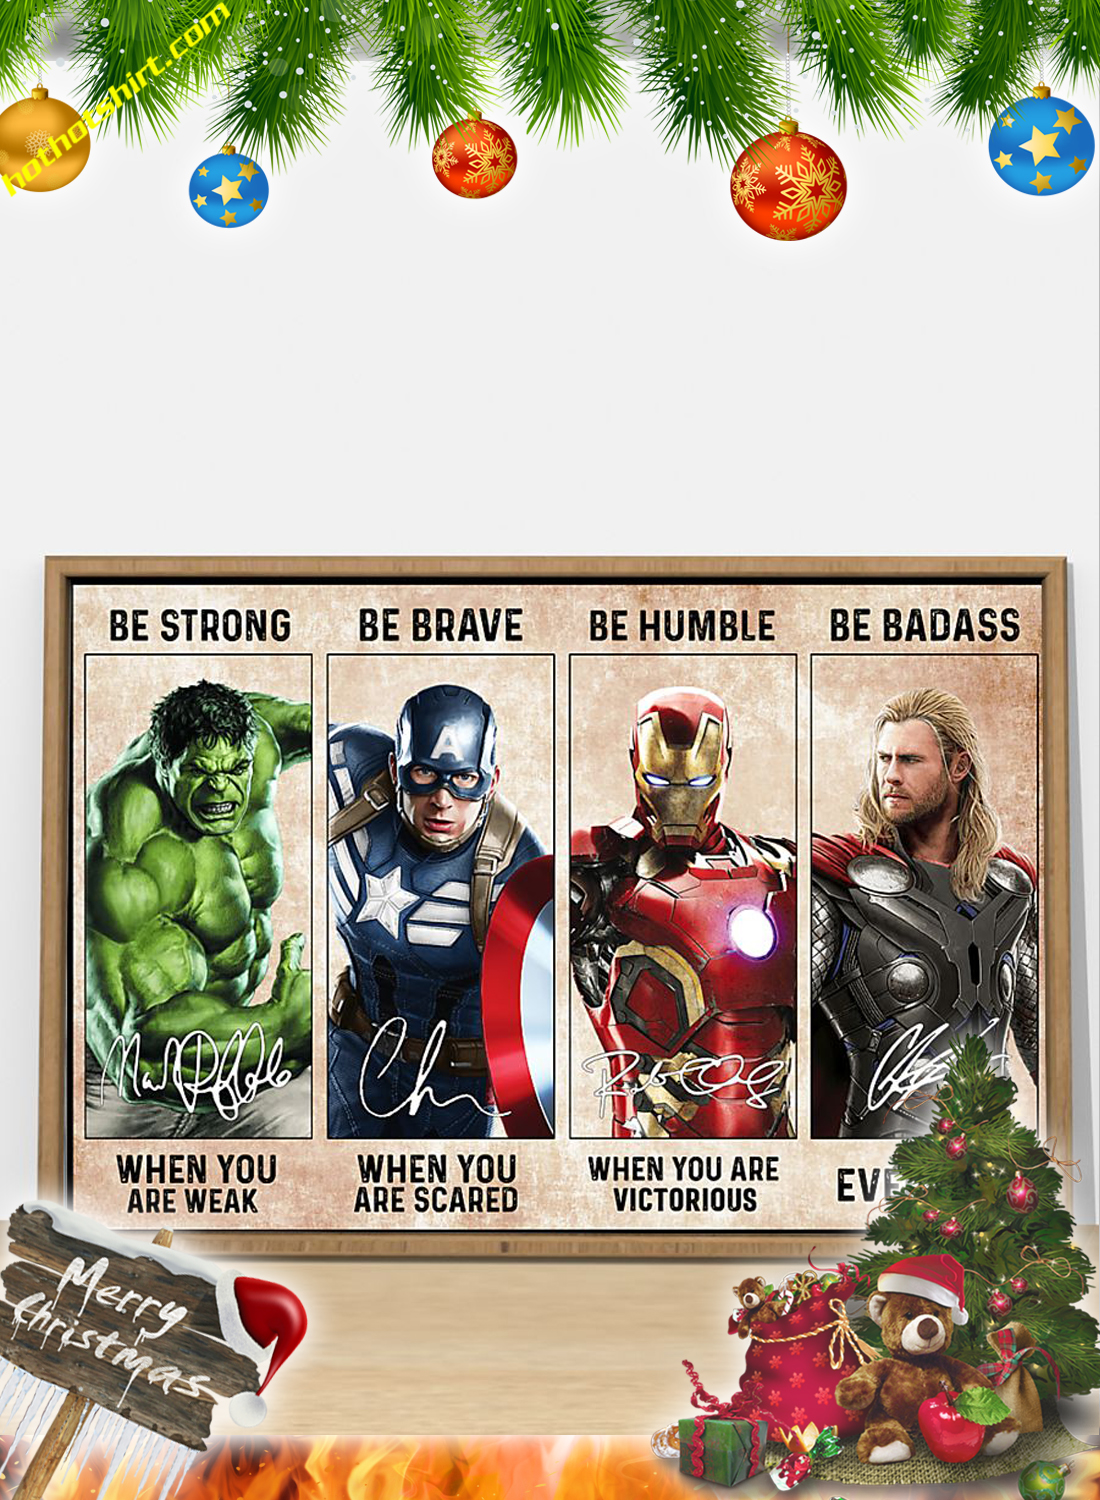 Hulk Captain America Iron Man Thor be strong be brave be humble be badass poster 2